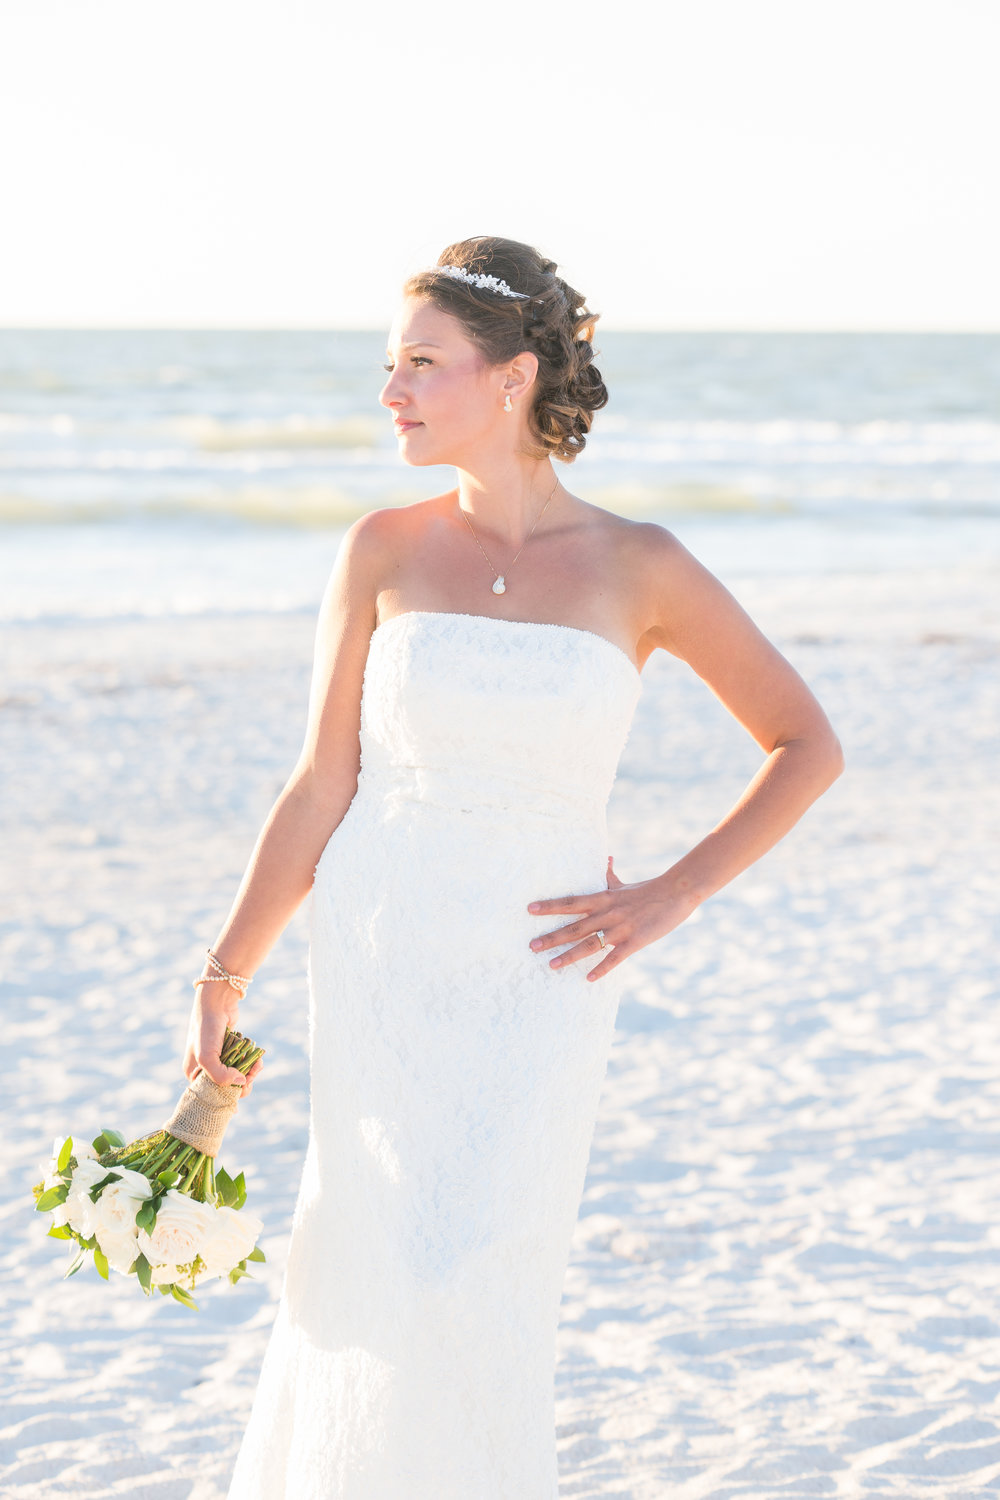 Bride portrait, St.Pete wedding photographer, St.Pete wedding, St.Pete beach, tide the knot beach weddings, mir salgado photography, Tampa wedding photographer